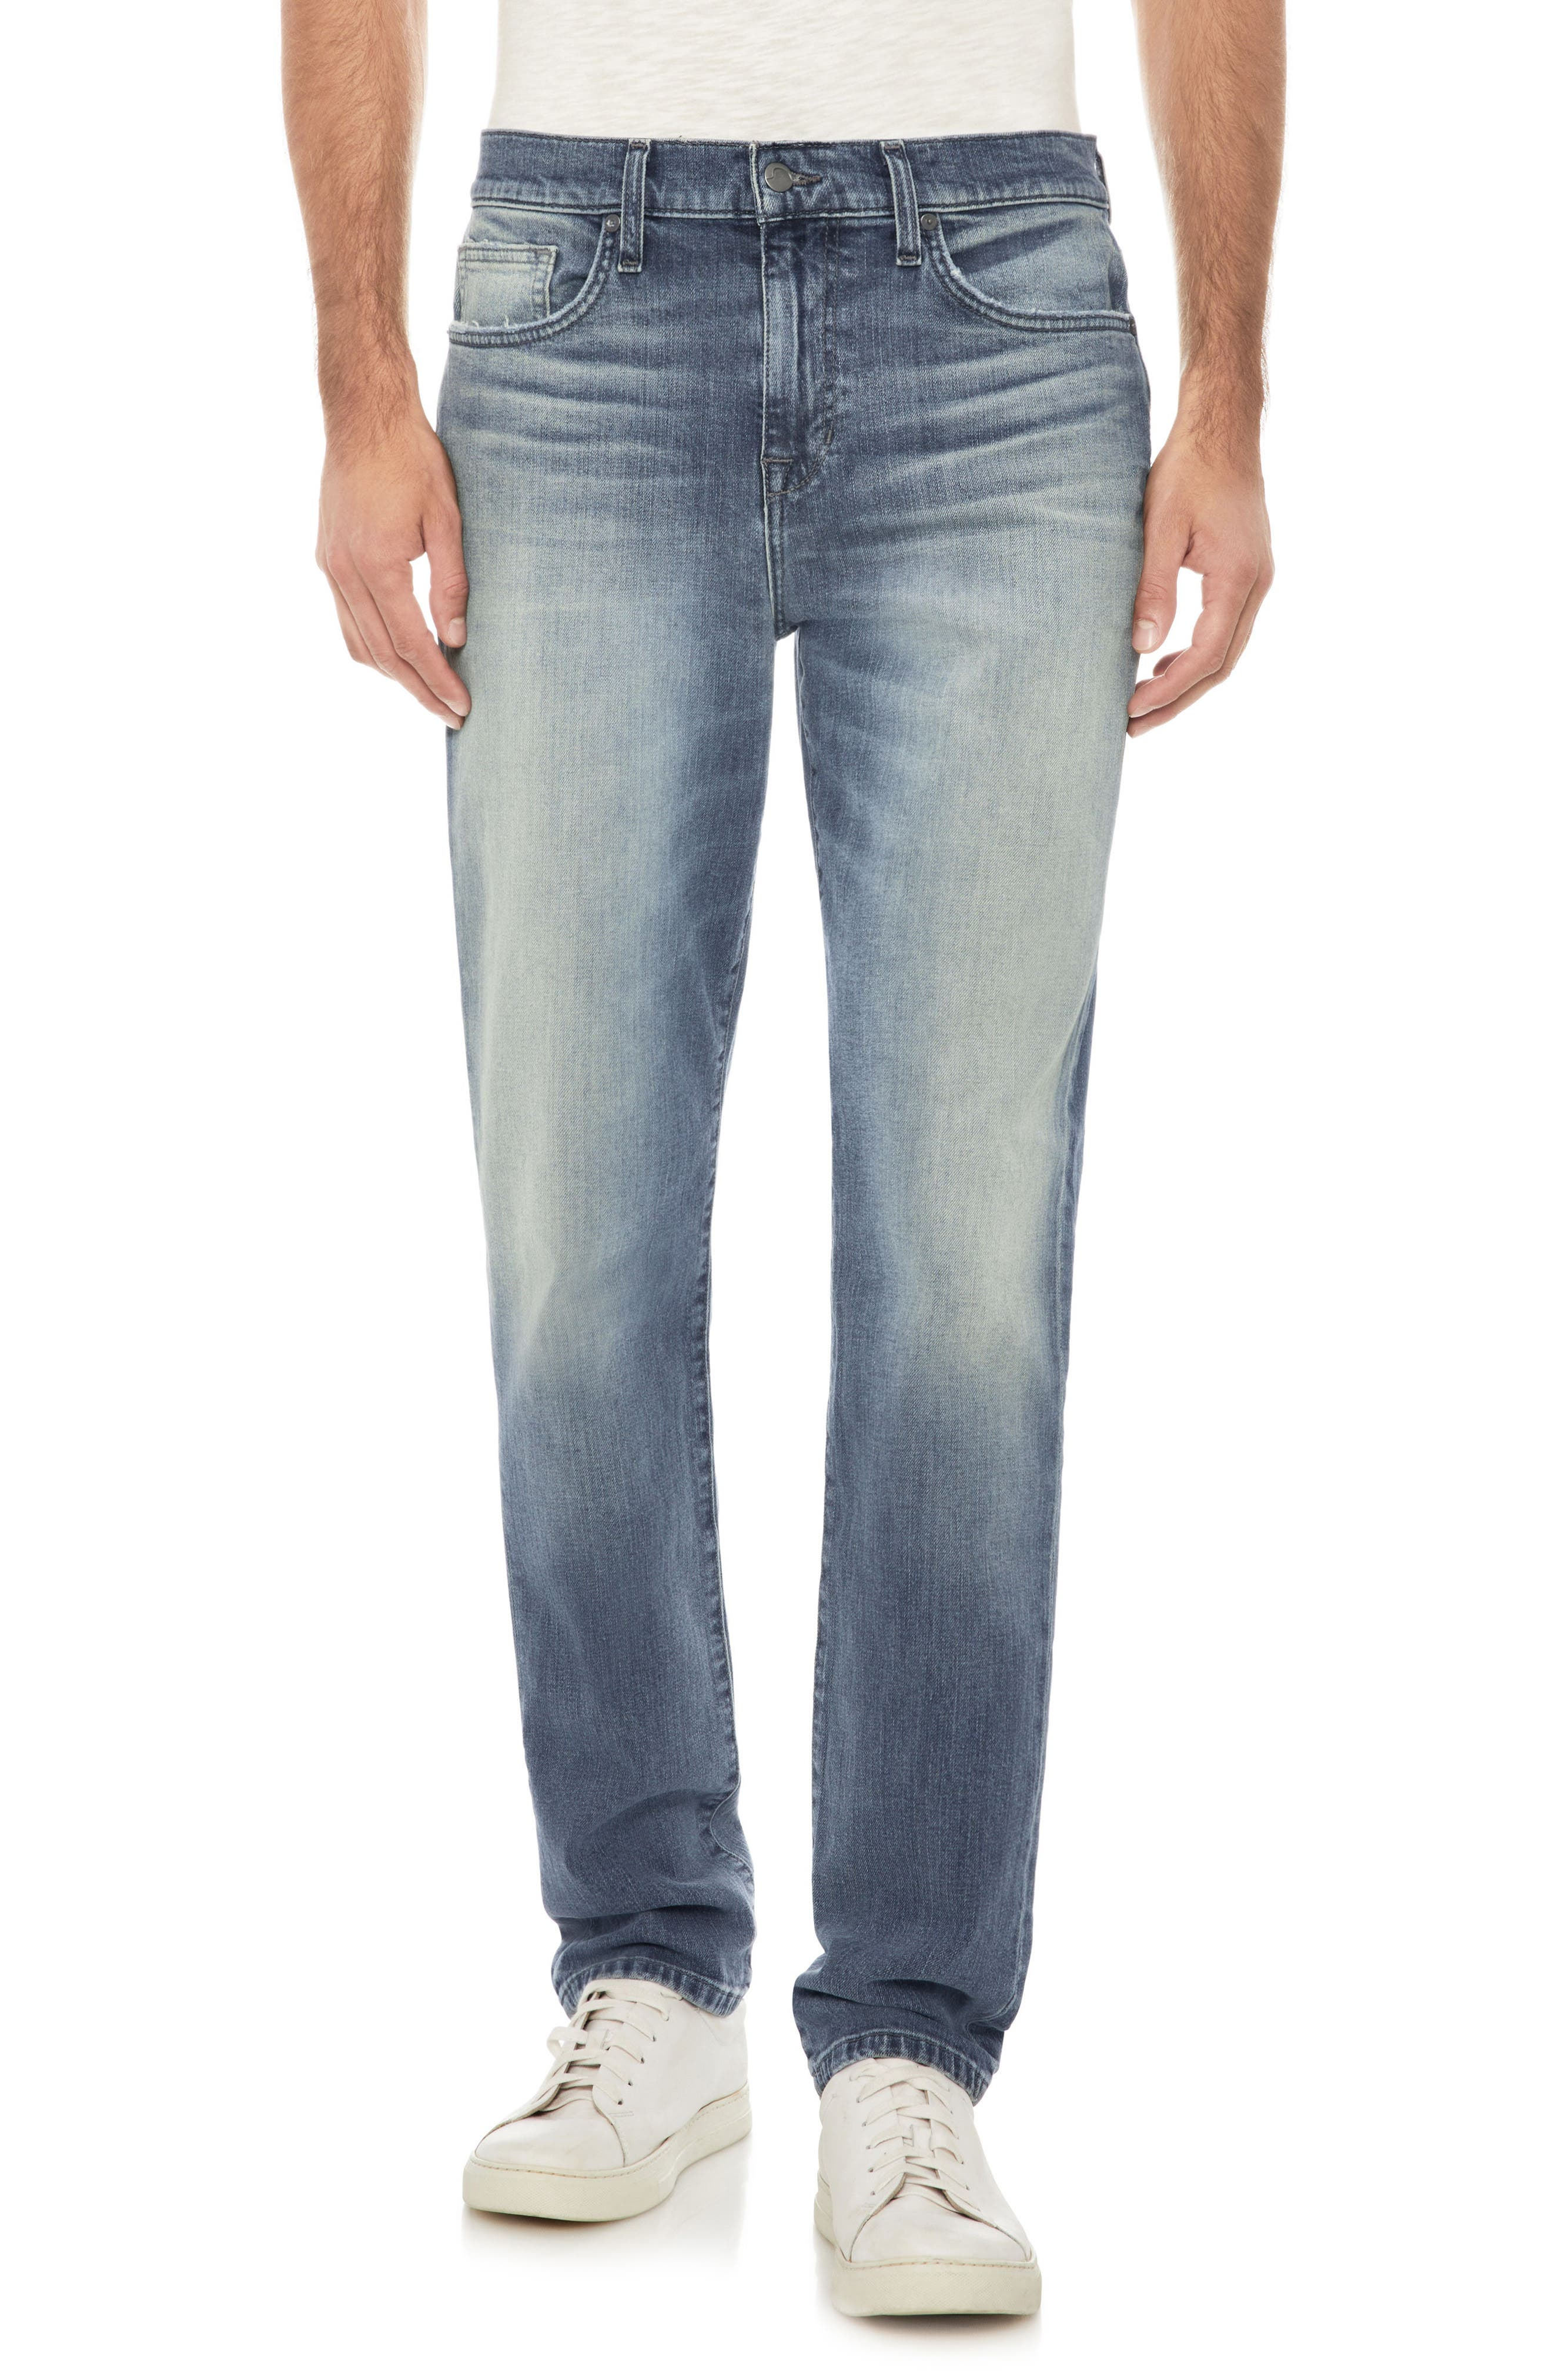 Folsom Slim Fit Jeans,                         Main,                         color,